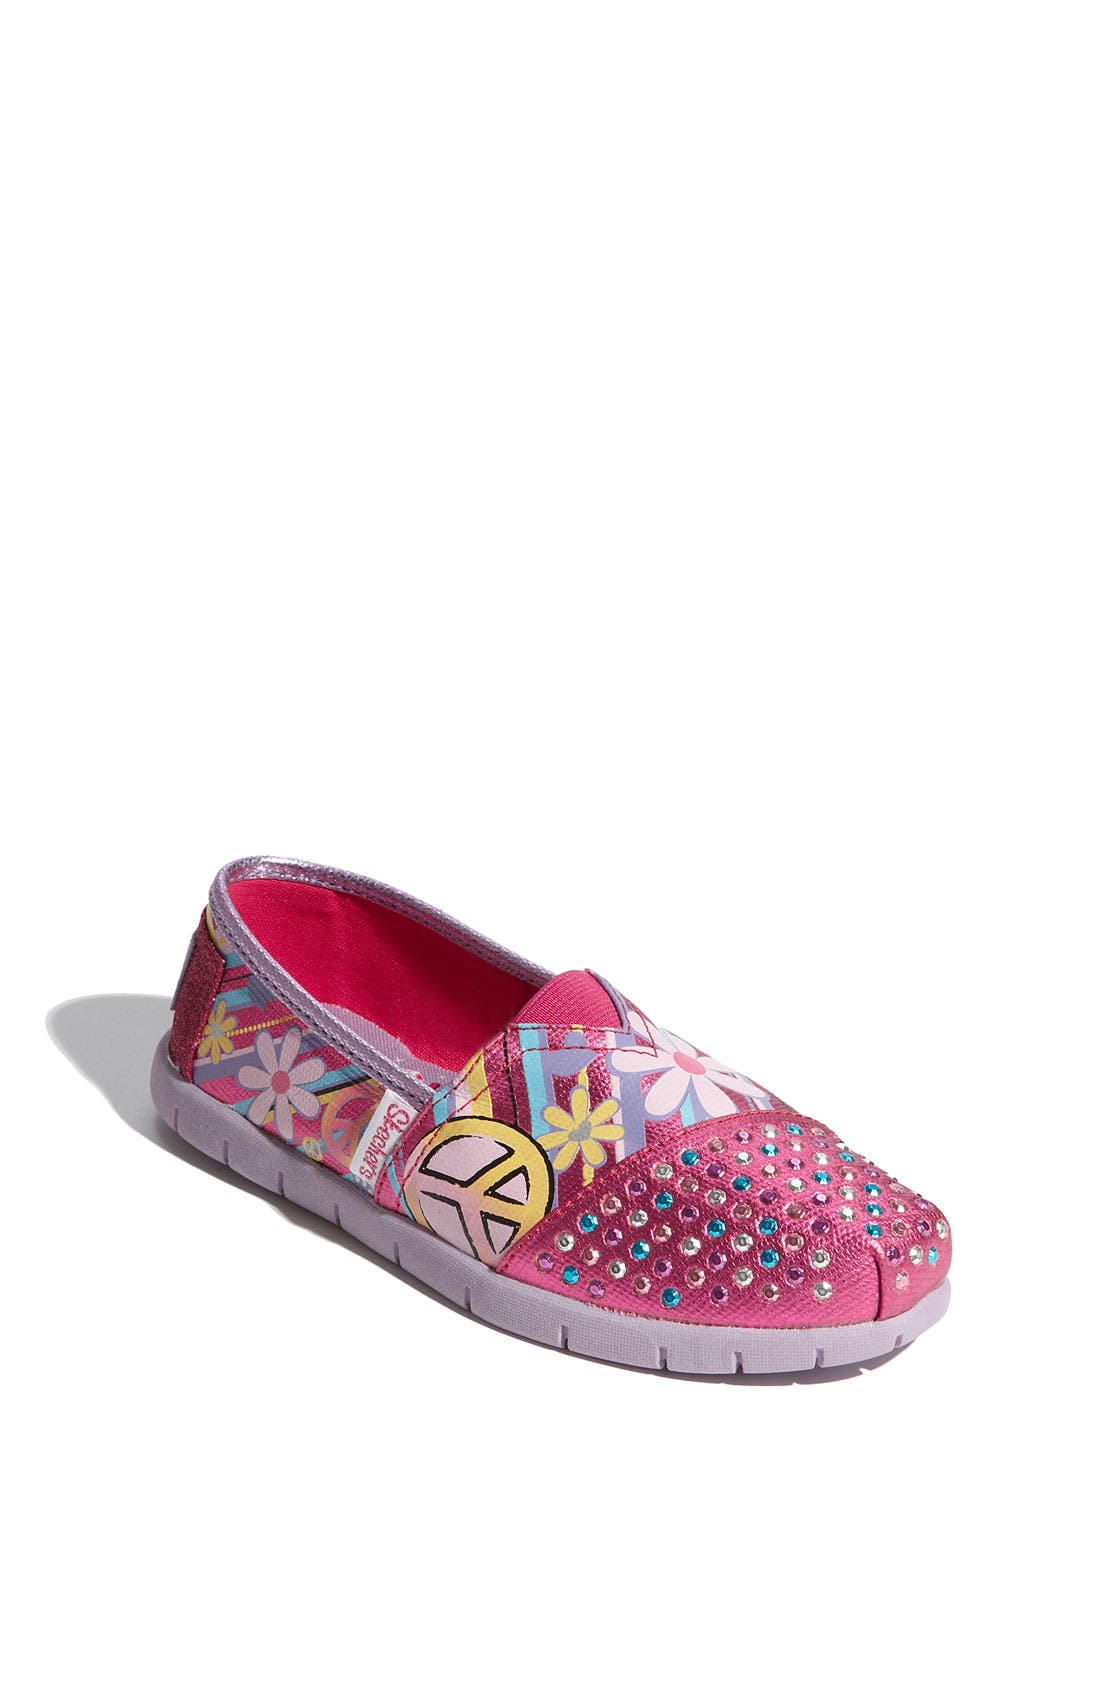 Main Image - SKECHERS 'Shuffle Ups' Slip-On (Toddler, Little Kid & Big Kid)